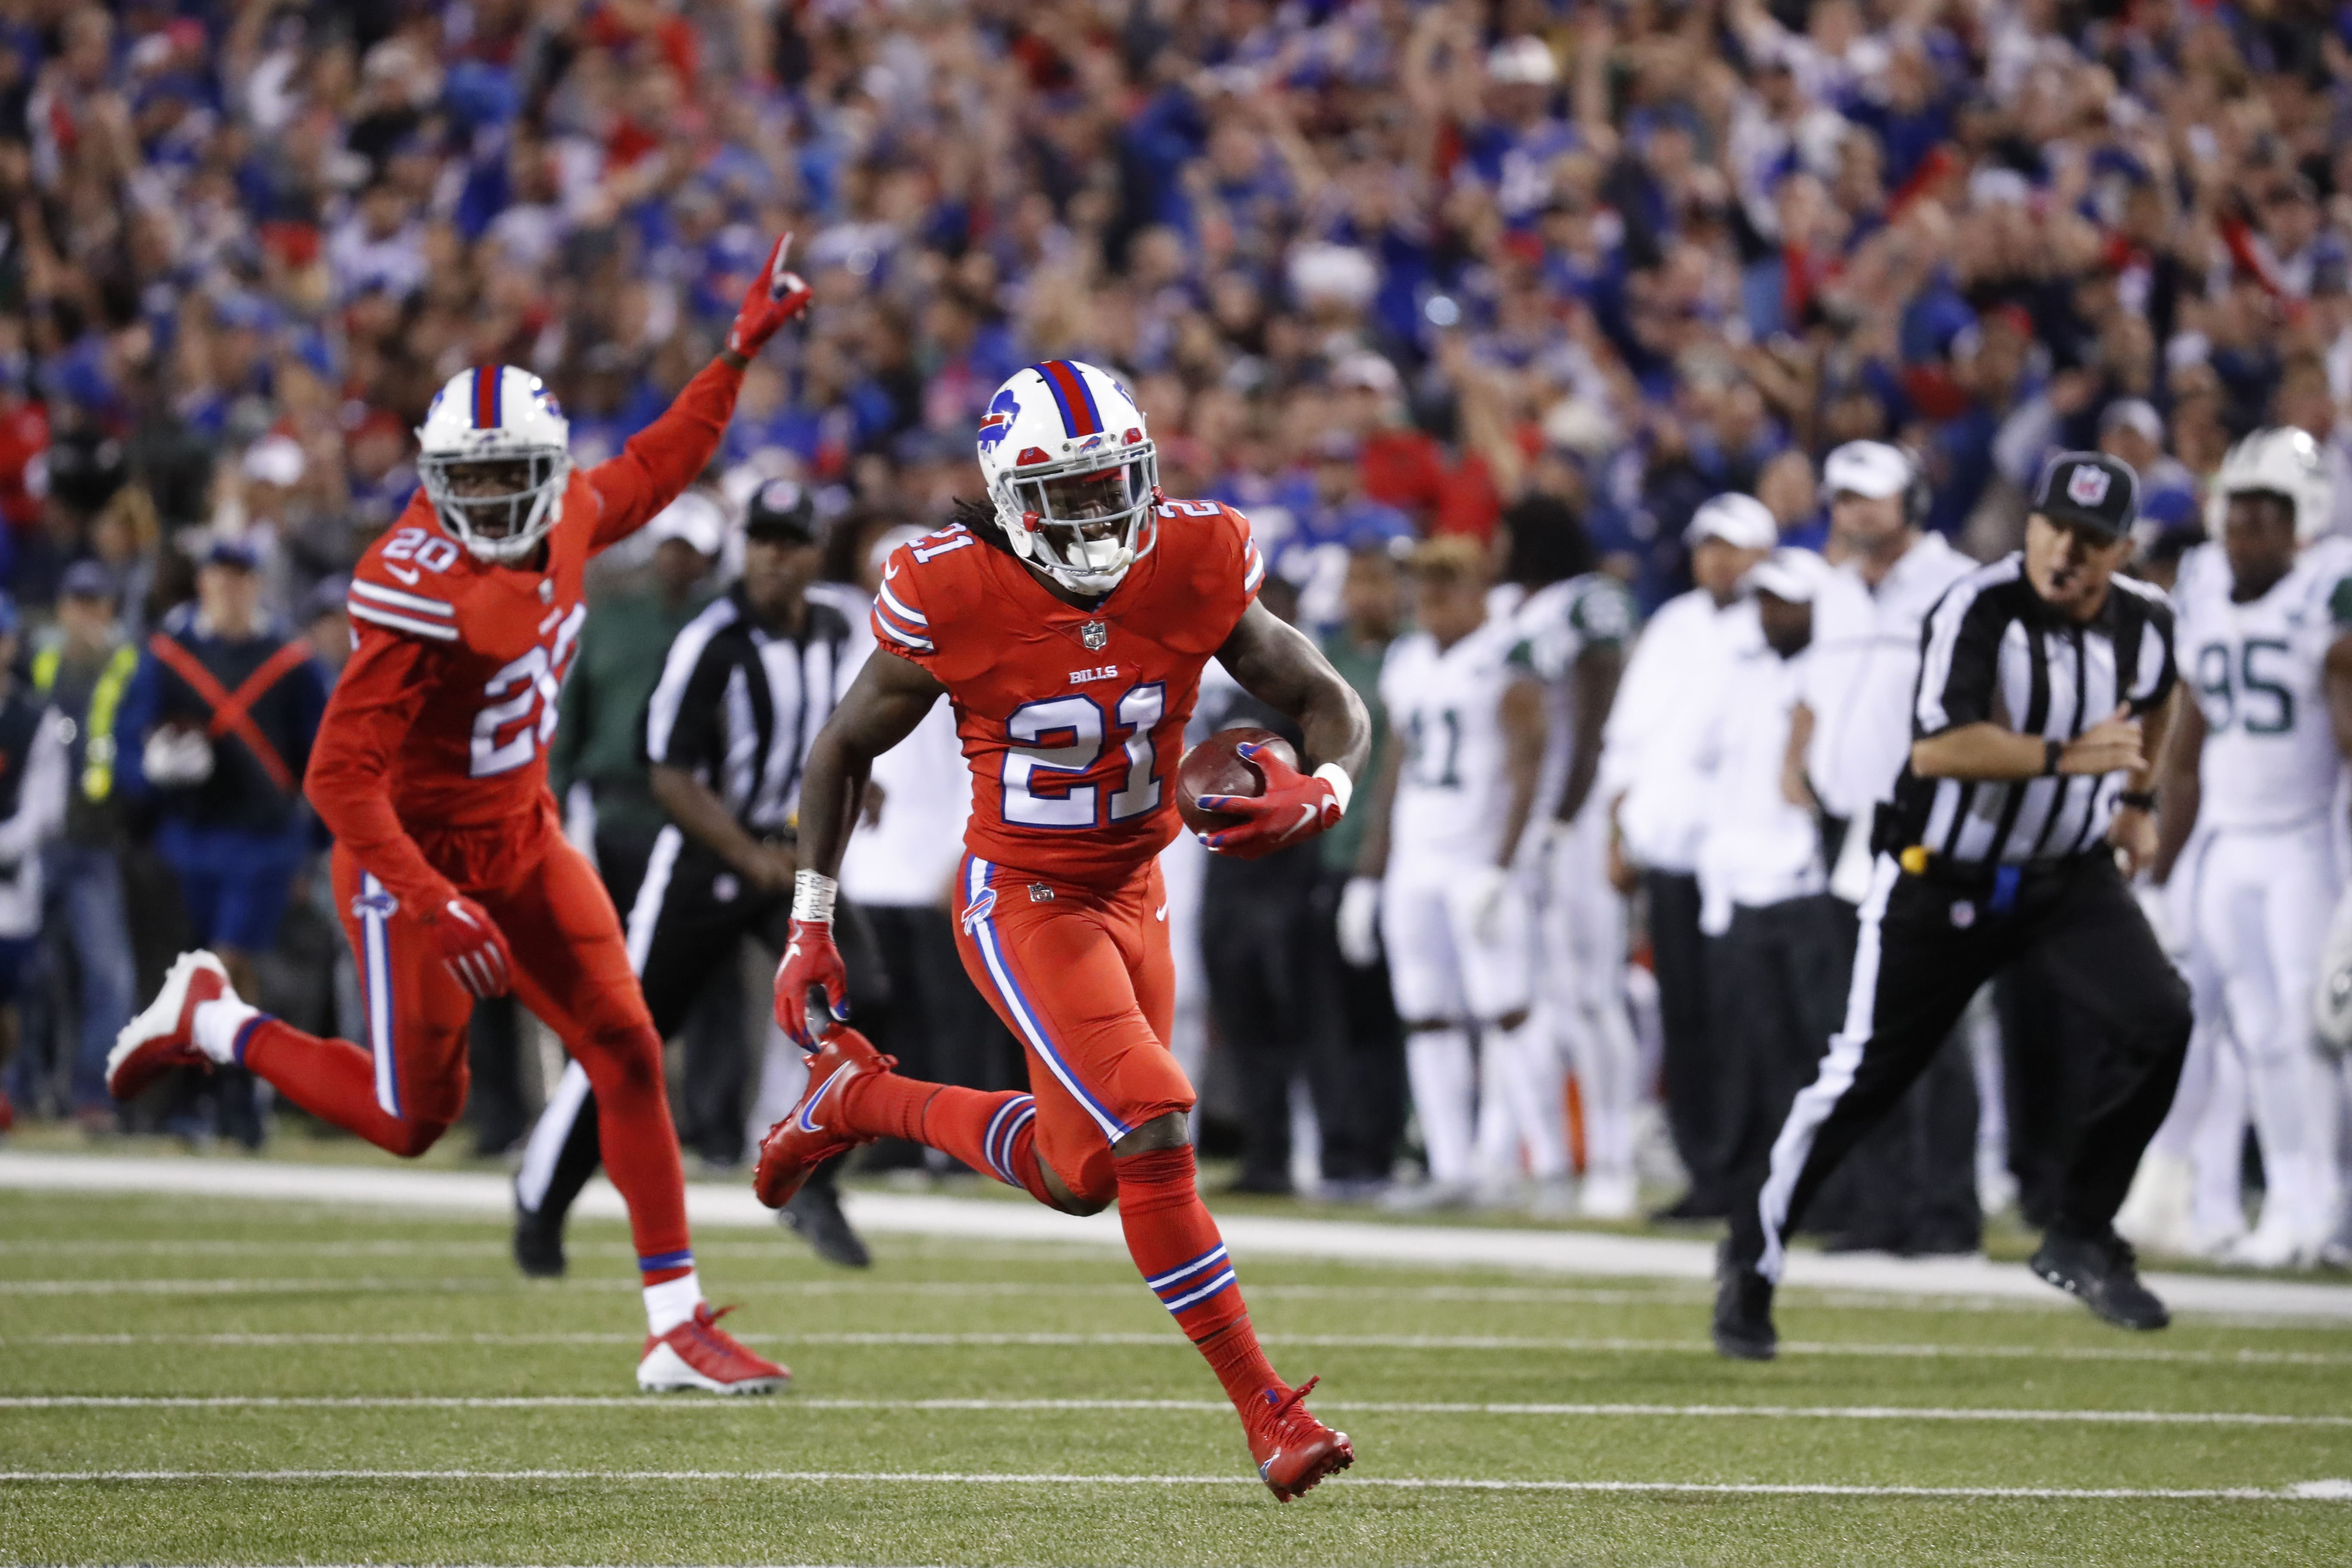 Buffalo Bills cornerback Nickell Robey-Coleman (21) returns a fumble for a touchdown.